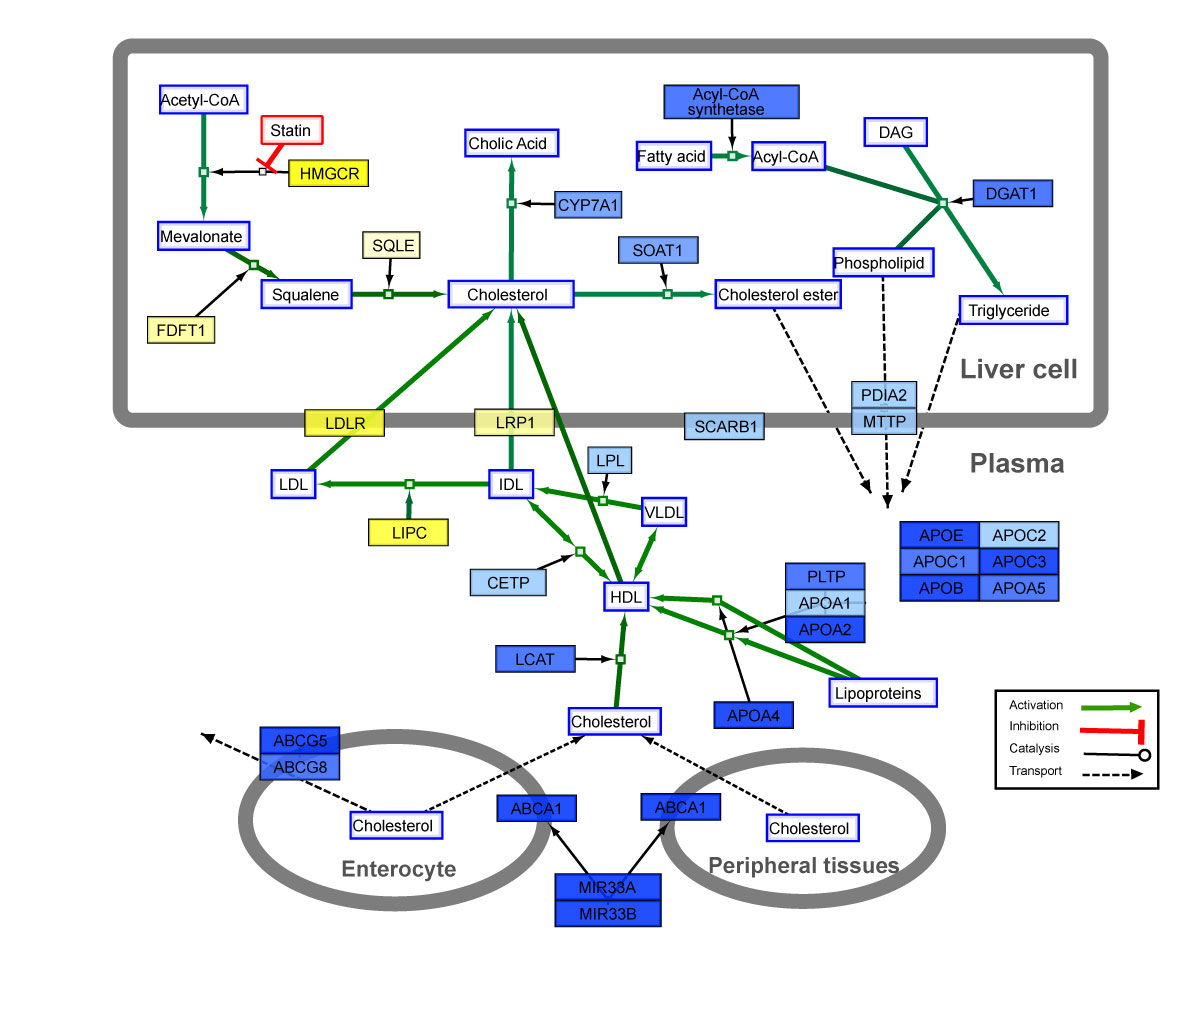 WikiPathways 4